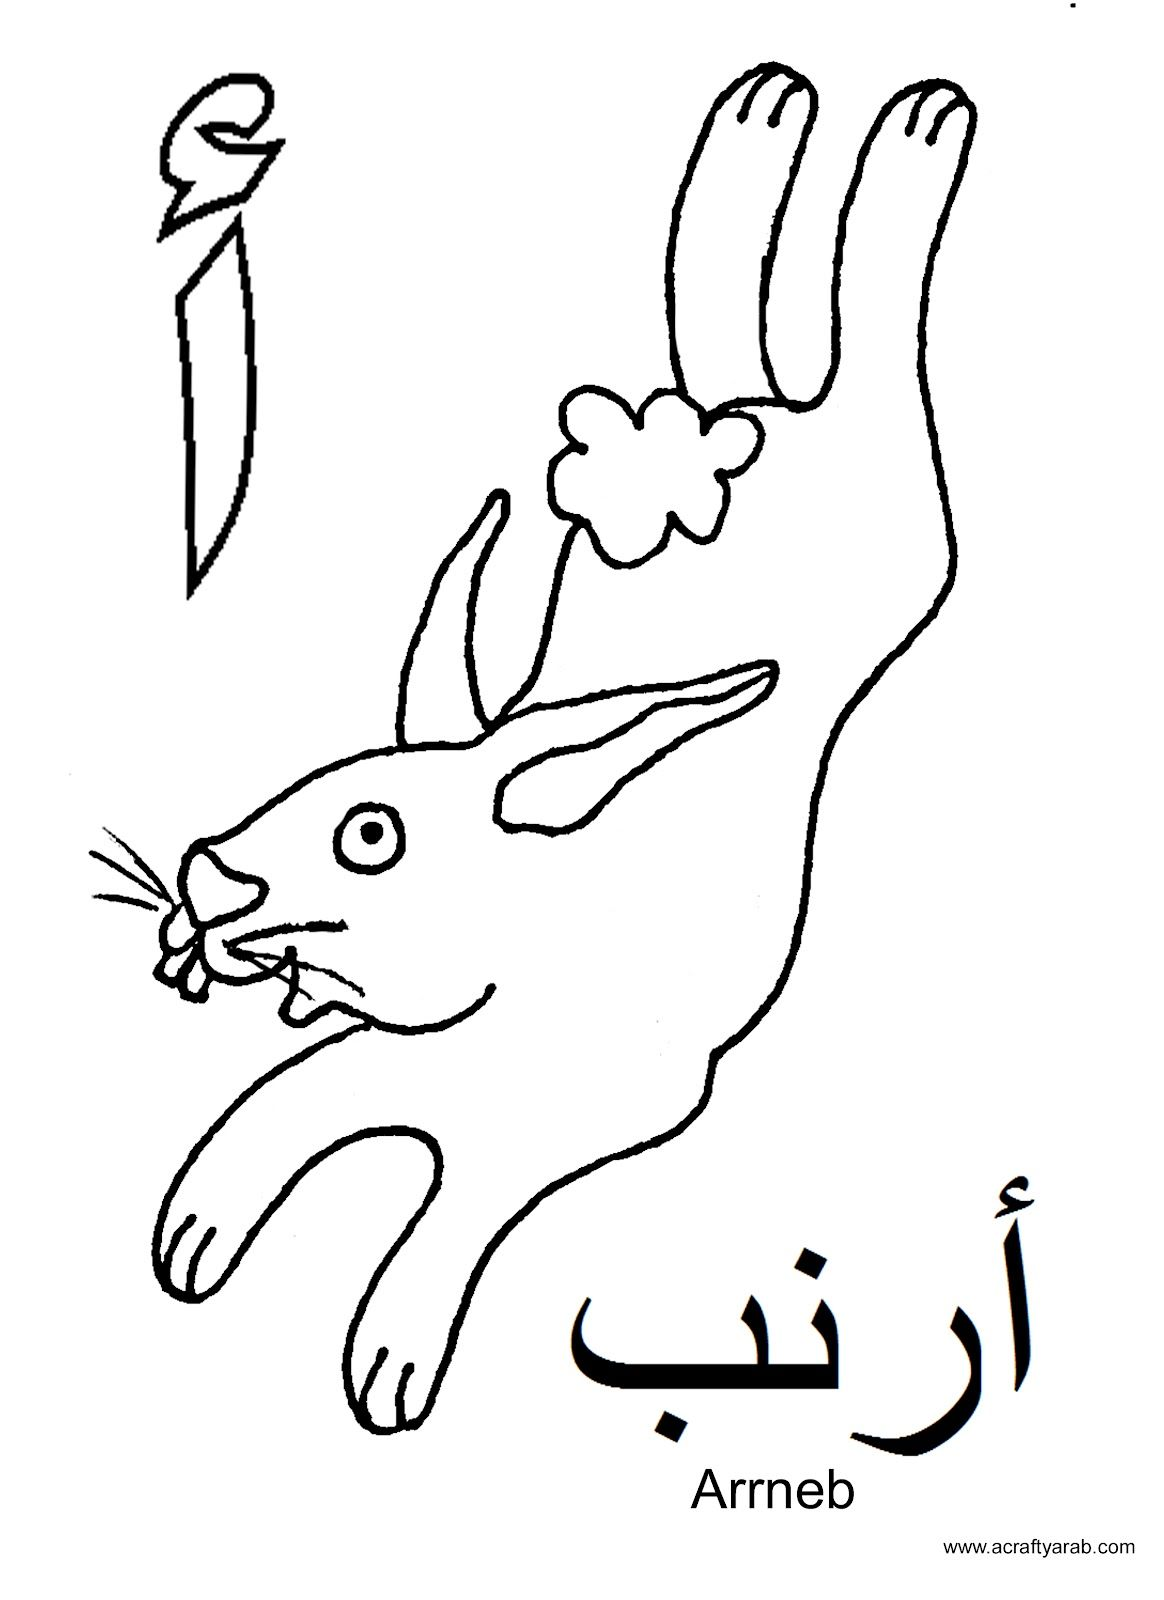 Printable Pages Of The Arabic Alphabet To Color